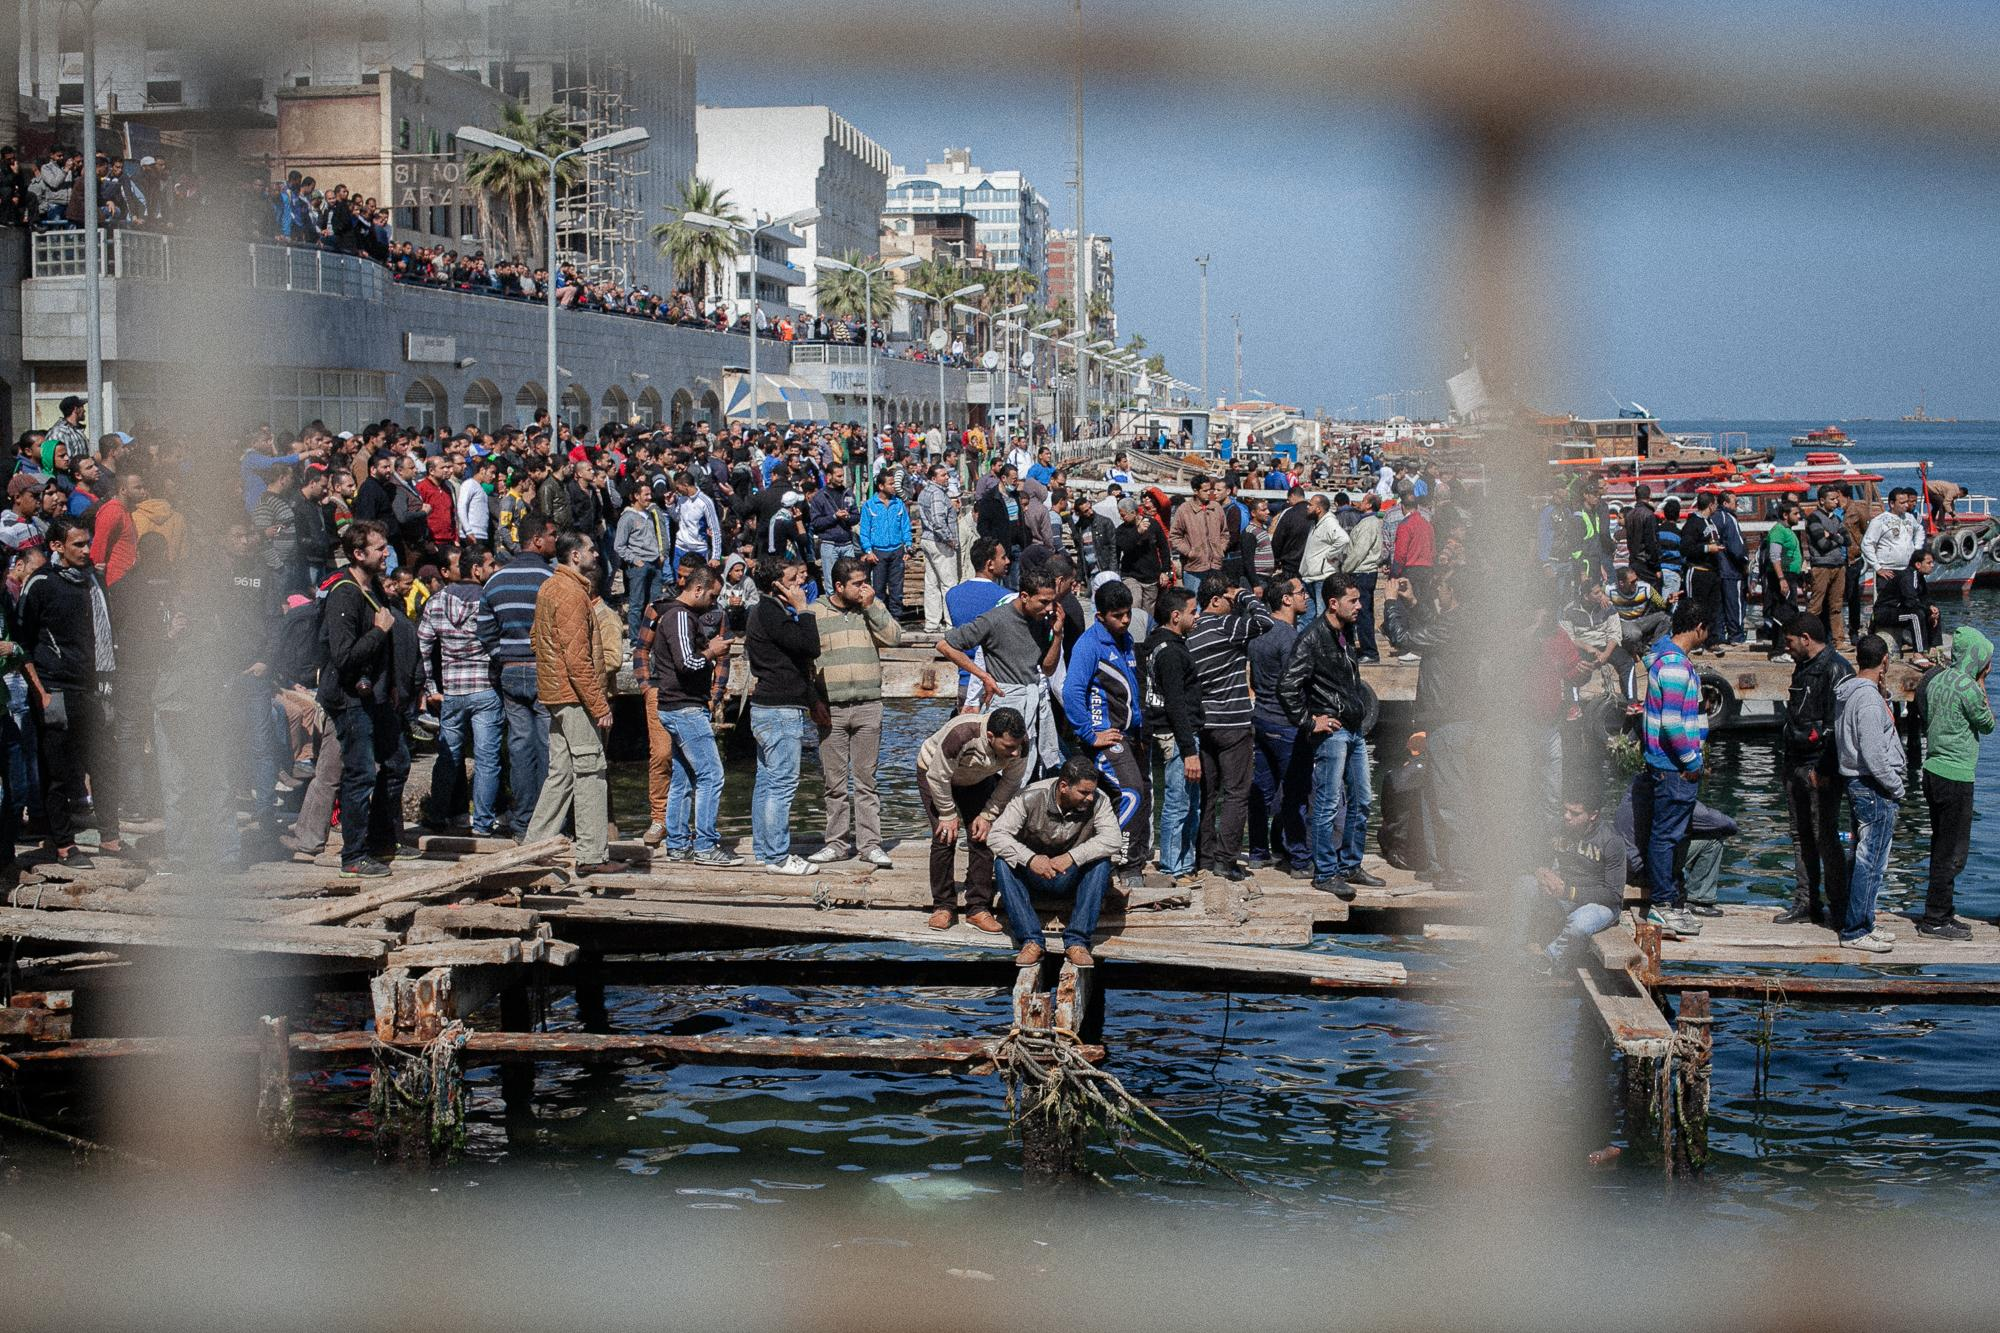 Protesters headed to Suez Canal Port on March 9, 2013 after hearing the verdict of the Port Said massacre that killed 72 people after an Ultras football match in early 2012 that turned violent.